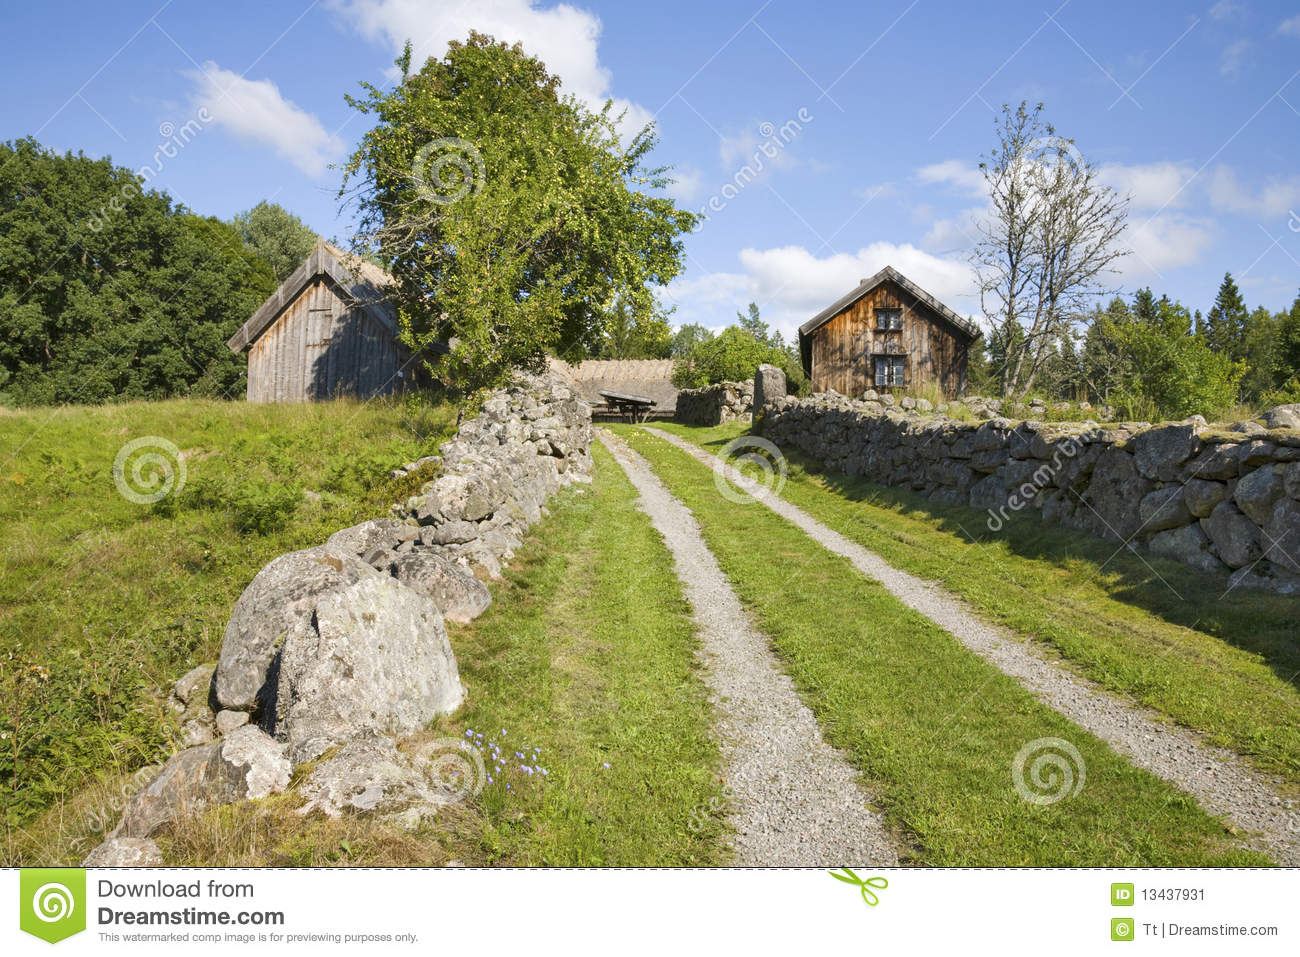 Landscaping Around An Old Farmhouse : Old farm landscape stock image